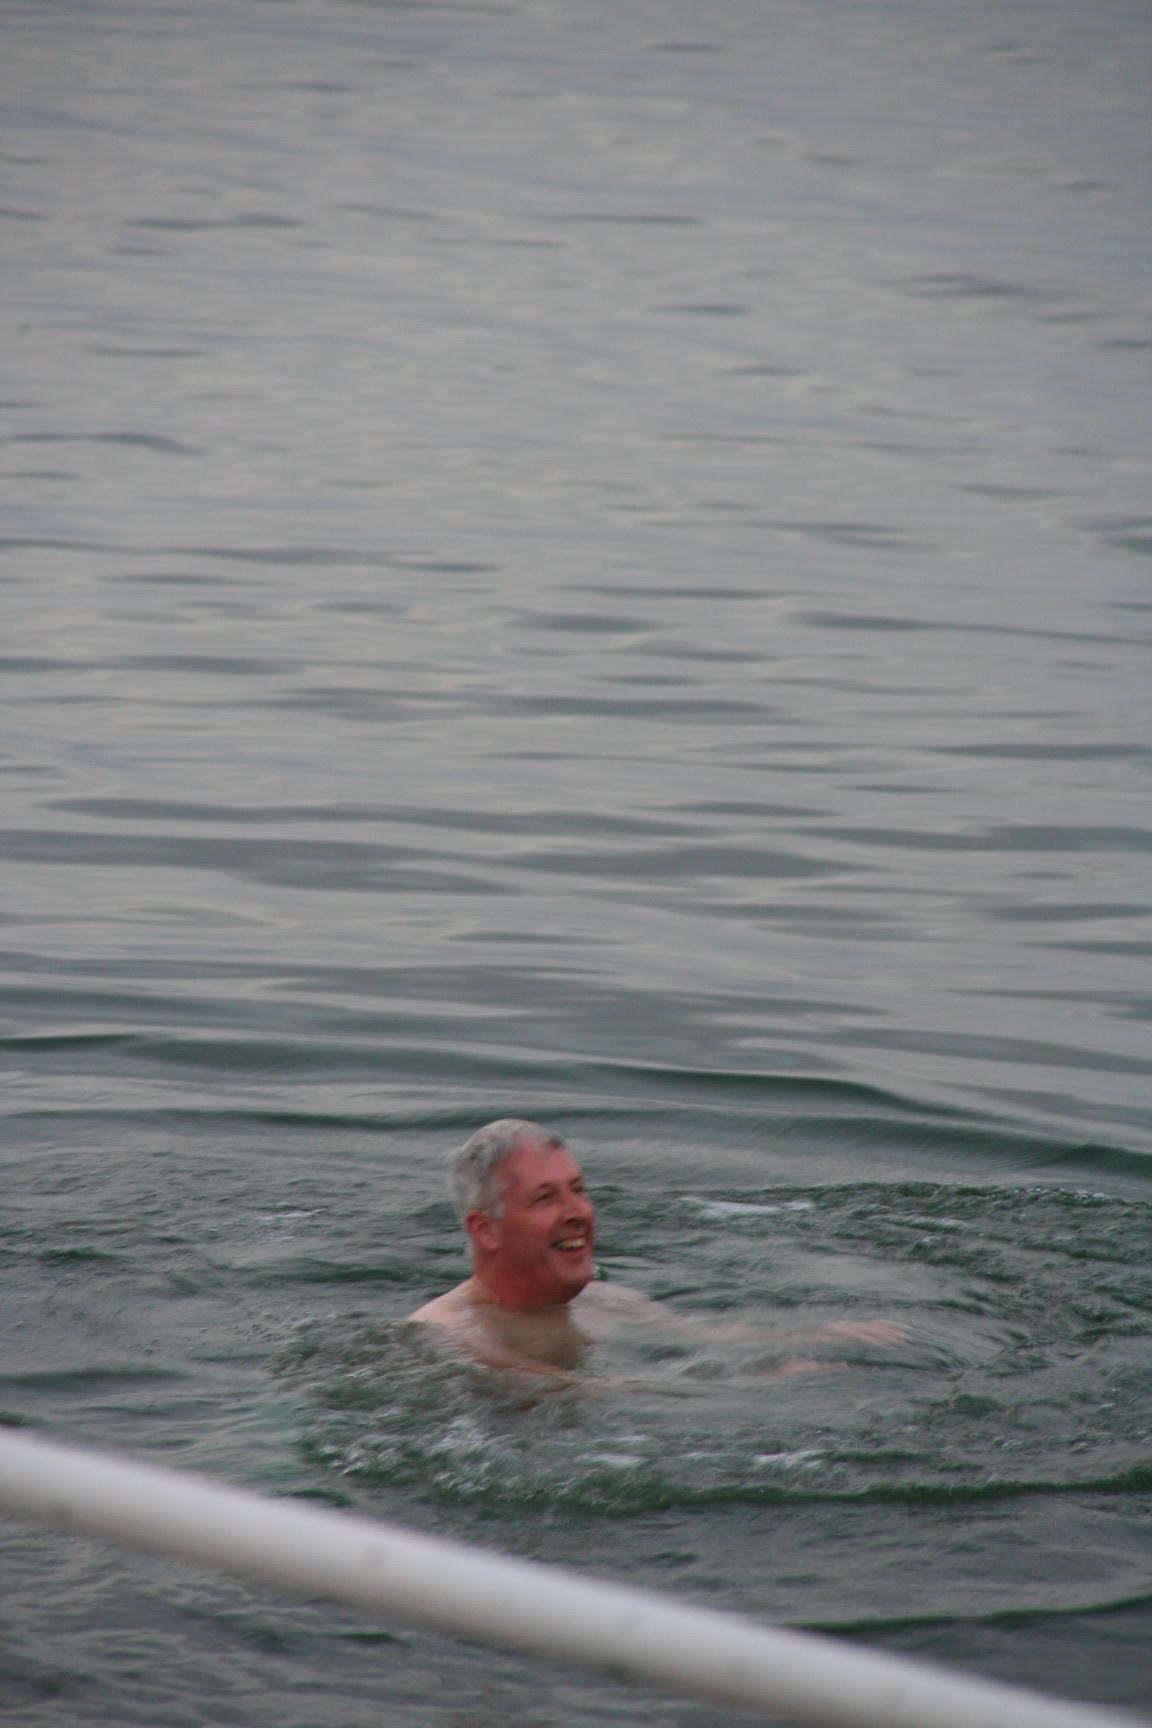 The bishop swimming in the Sea of Galilee